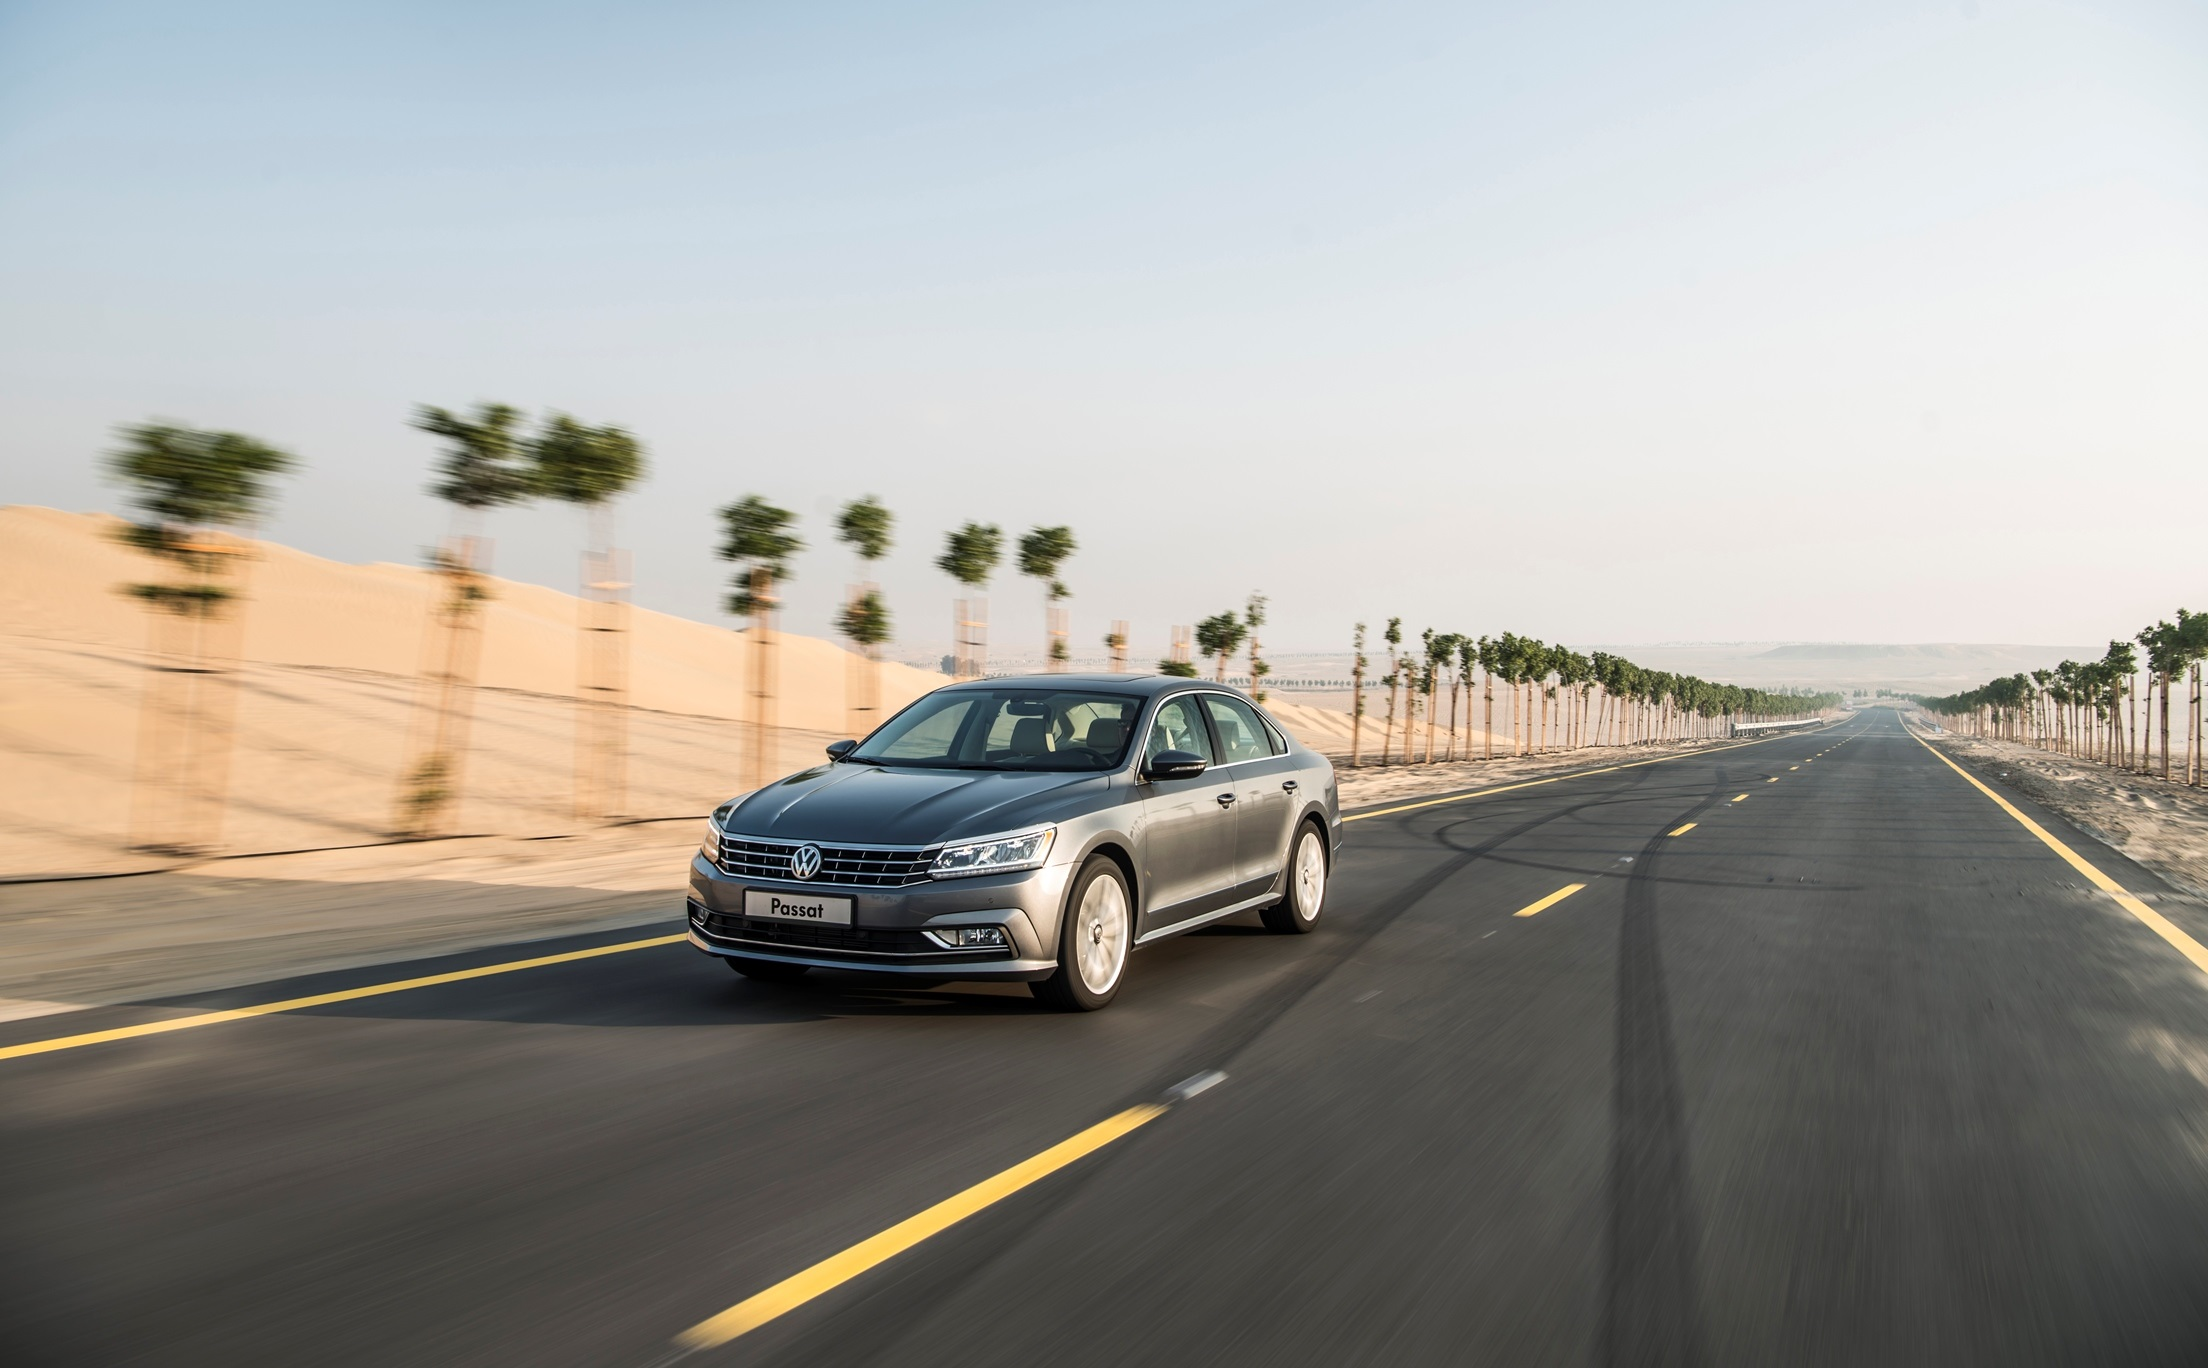 Volkswagen Passat named the region's 'Best Mid-Size Sedan'